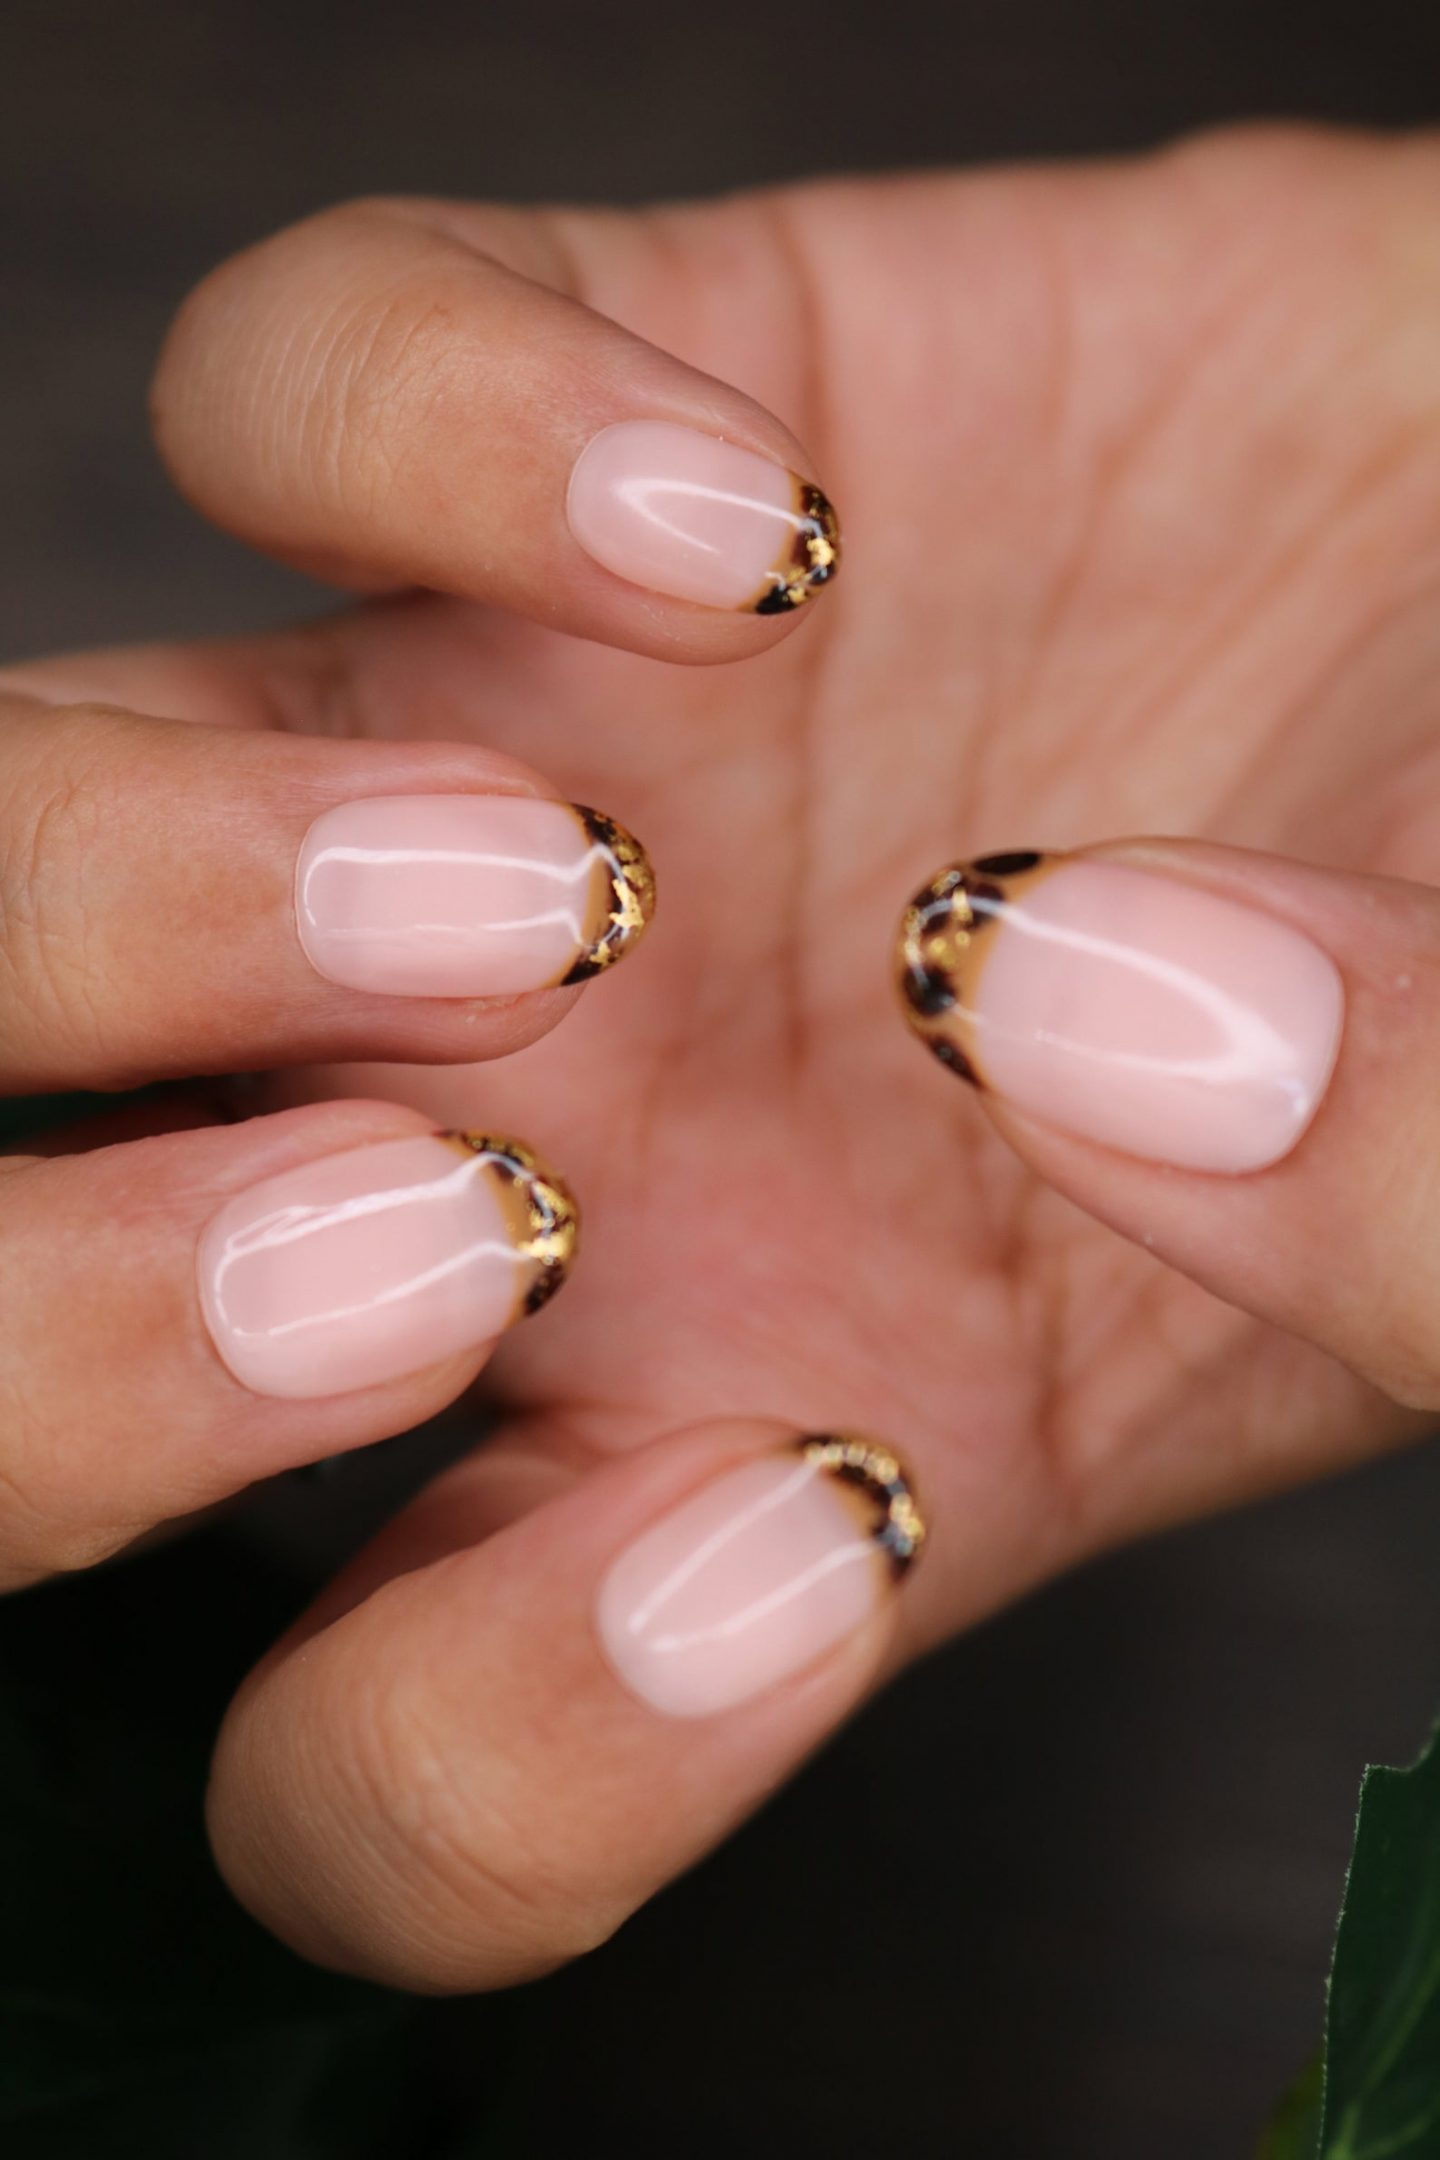 Cute tortoiseshell French tip nails with gold foil